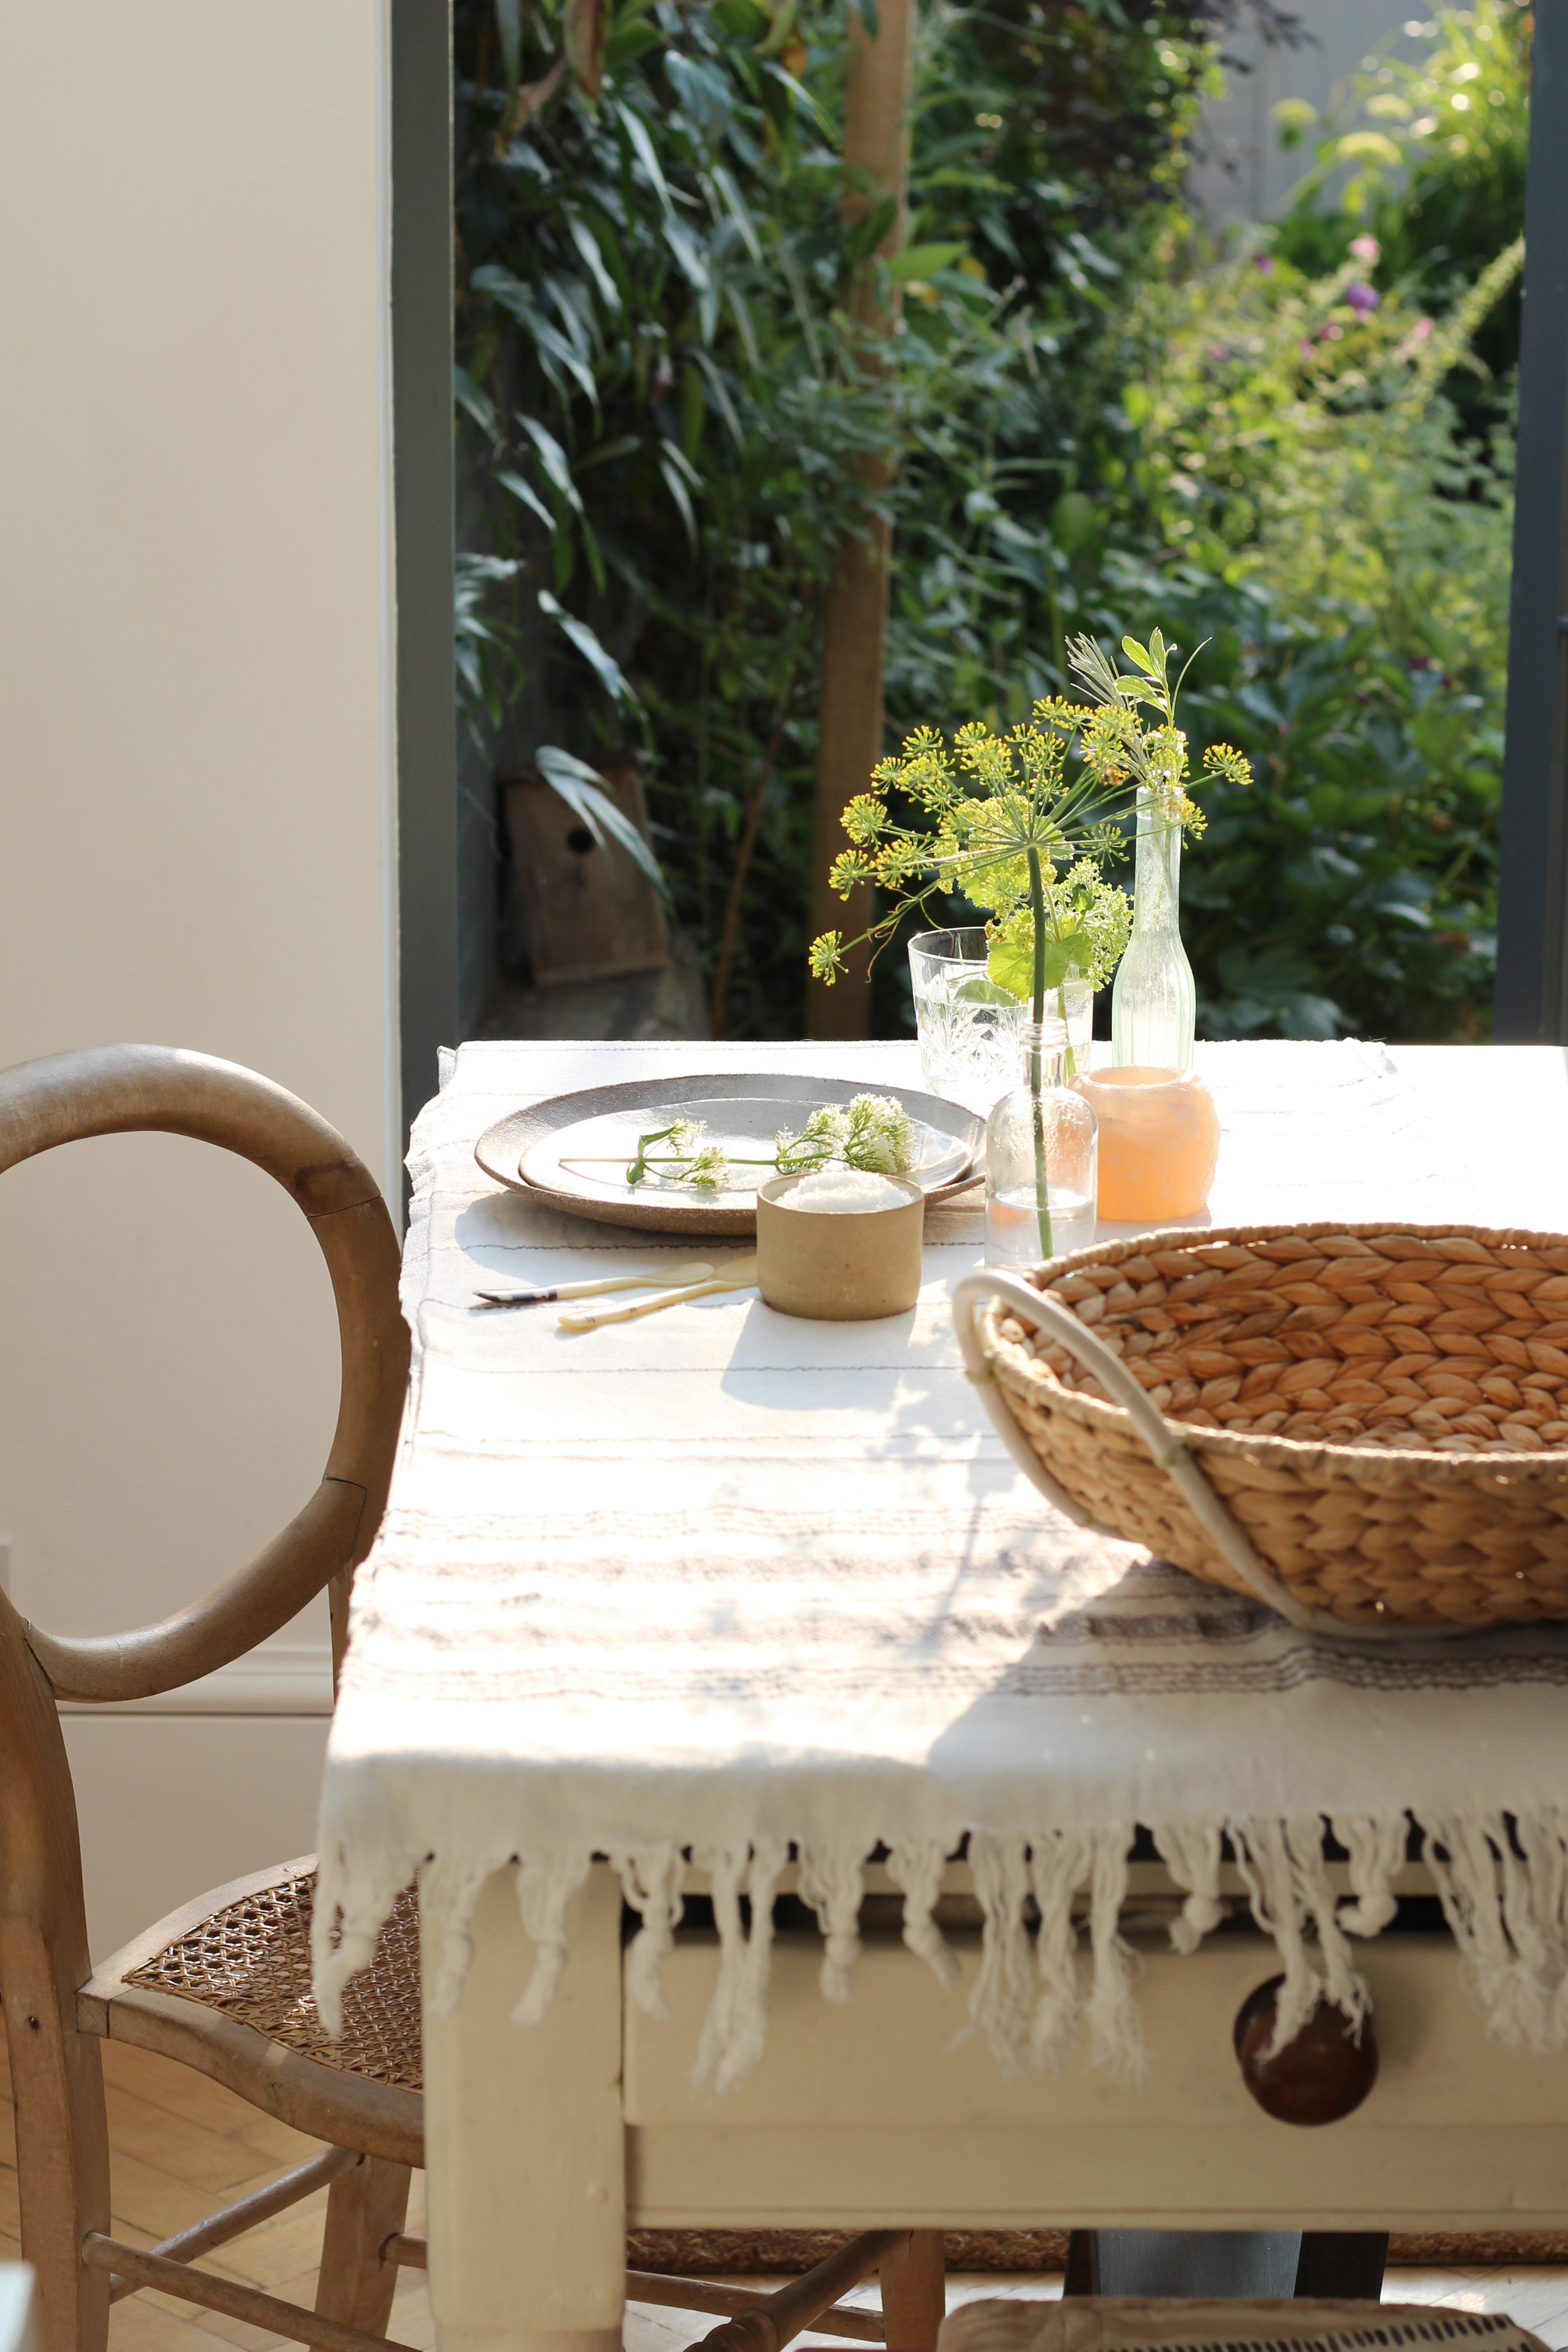 nancy-straughan-interior-stylist-country-home-styling.jpg